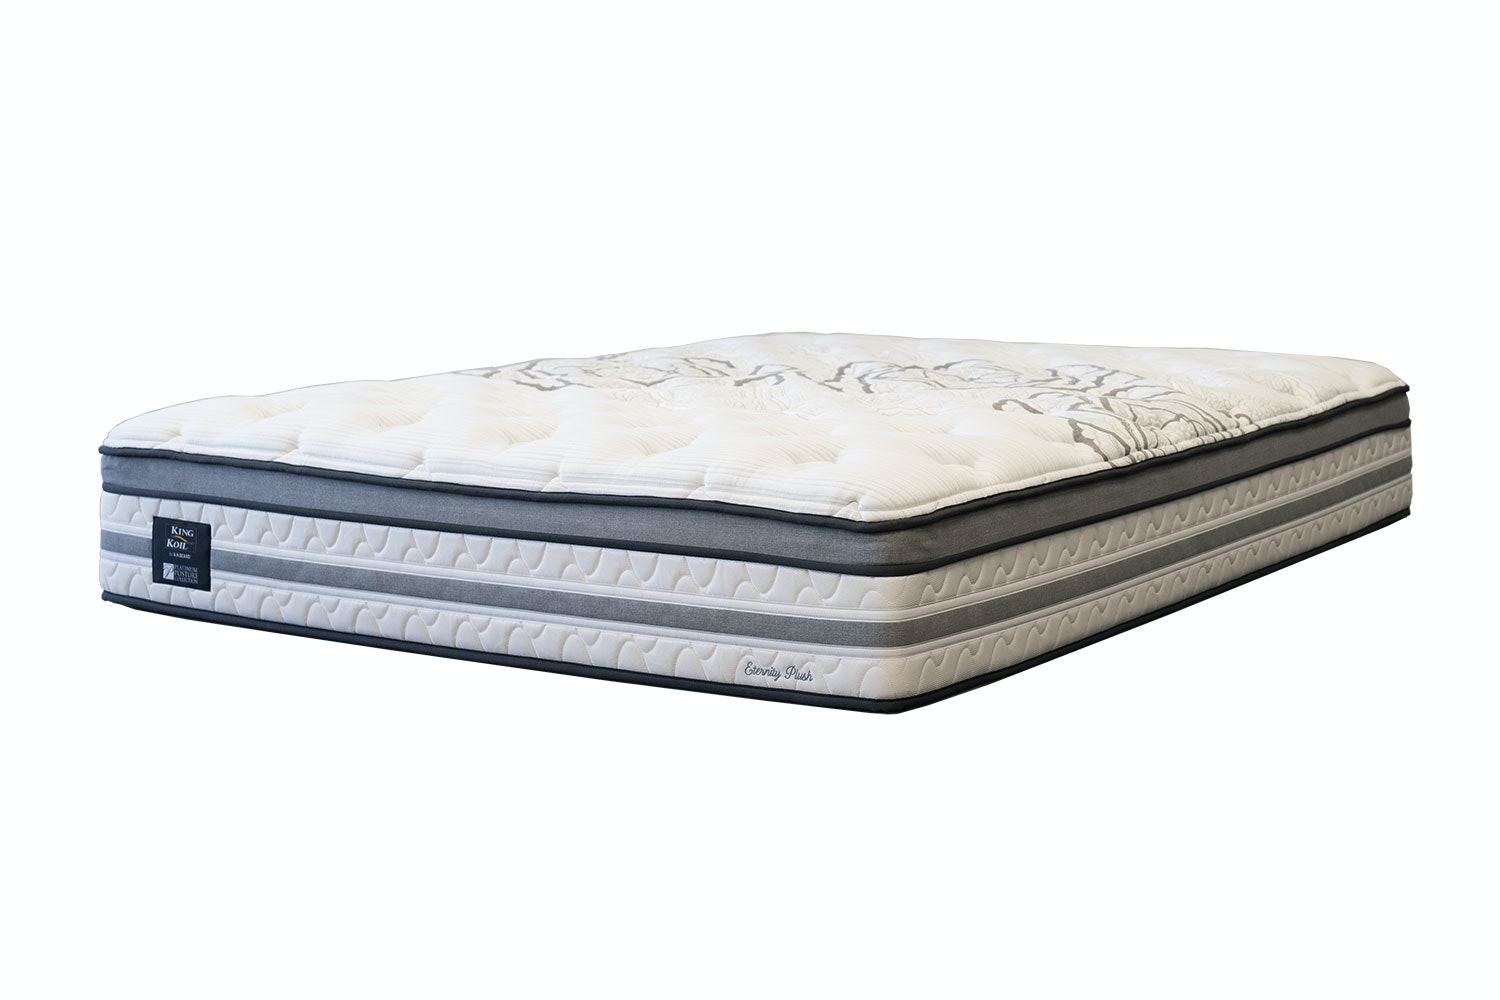 Eternity Plush Long Single Mattress by King Koil